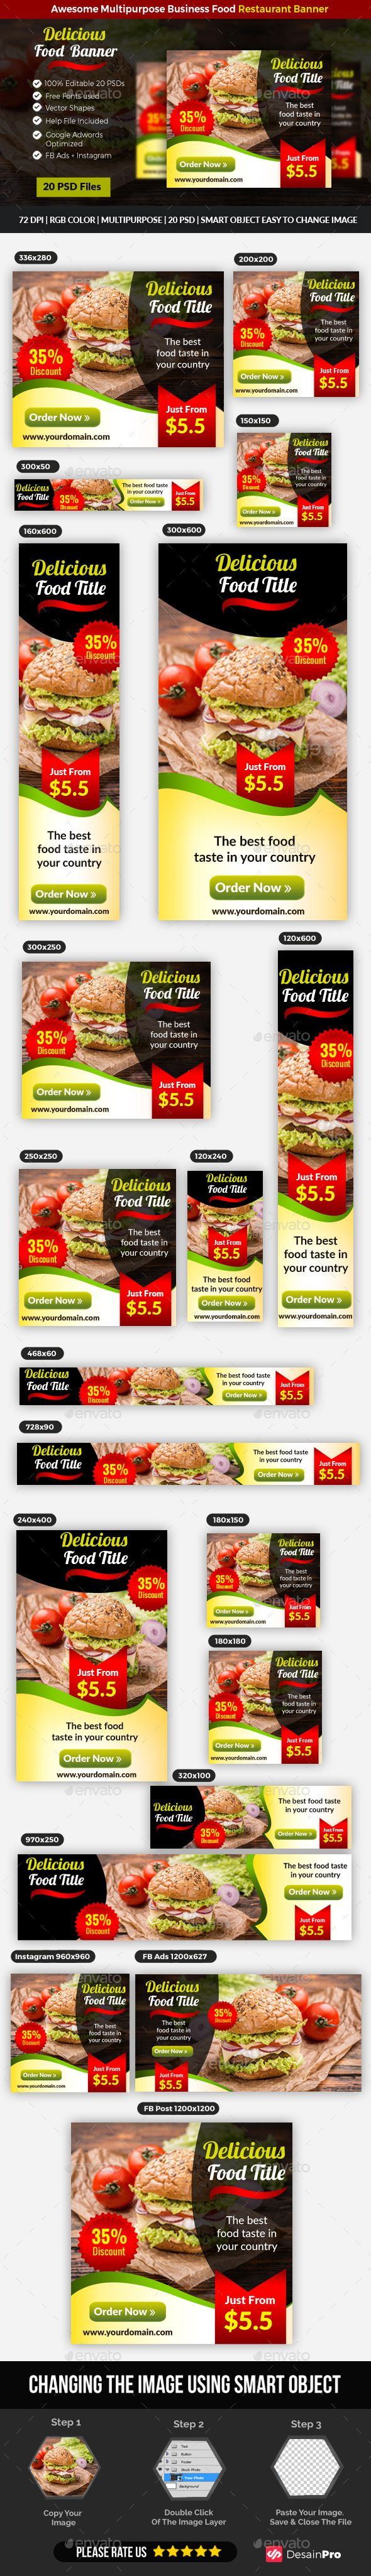 #Restaurant Food #Banner Ads - Banners & Ads #Web Elements Download here: https://graphicriver.net/item/restaurant-food-banner-ads/19711410?ref=alena994